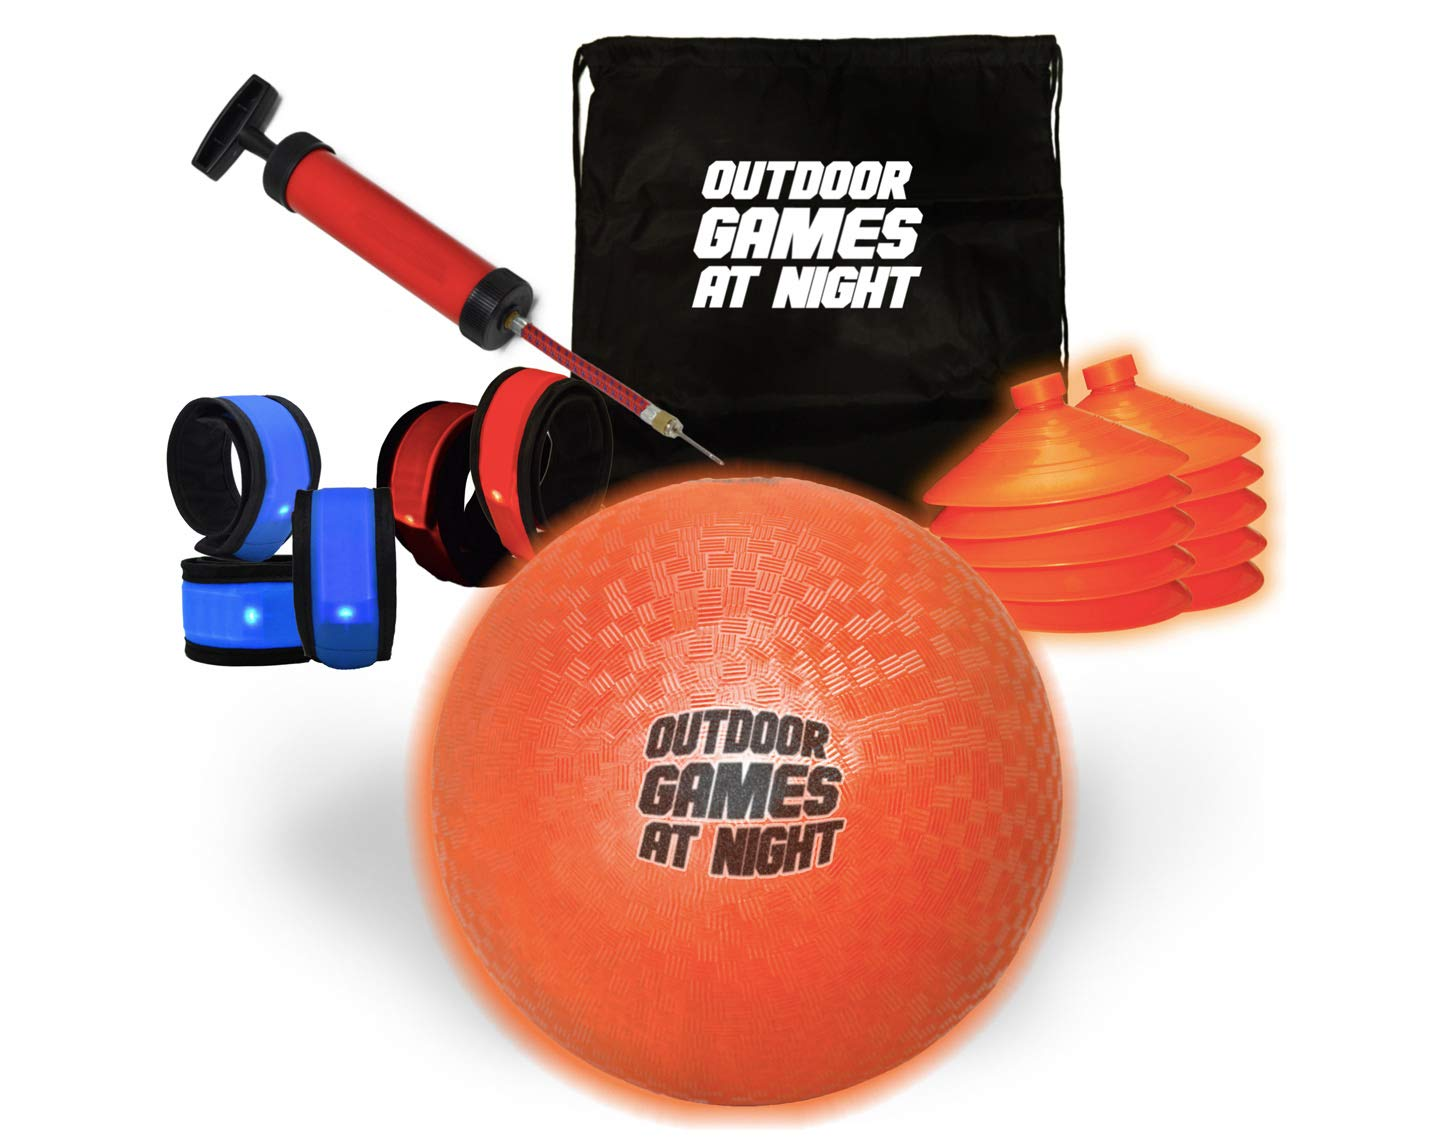 Outdoor Games At Night - LED Kickball, Cones, and Armbands. Better Than Glow in The Dark!